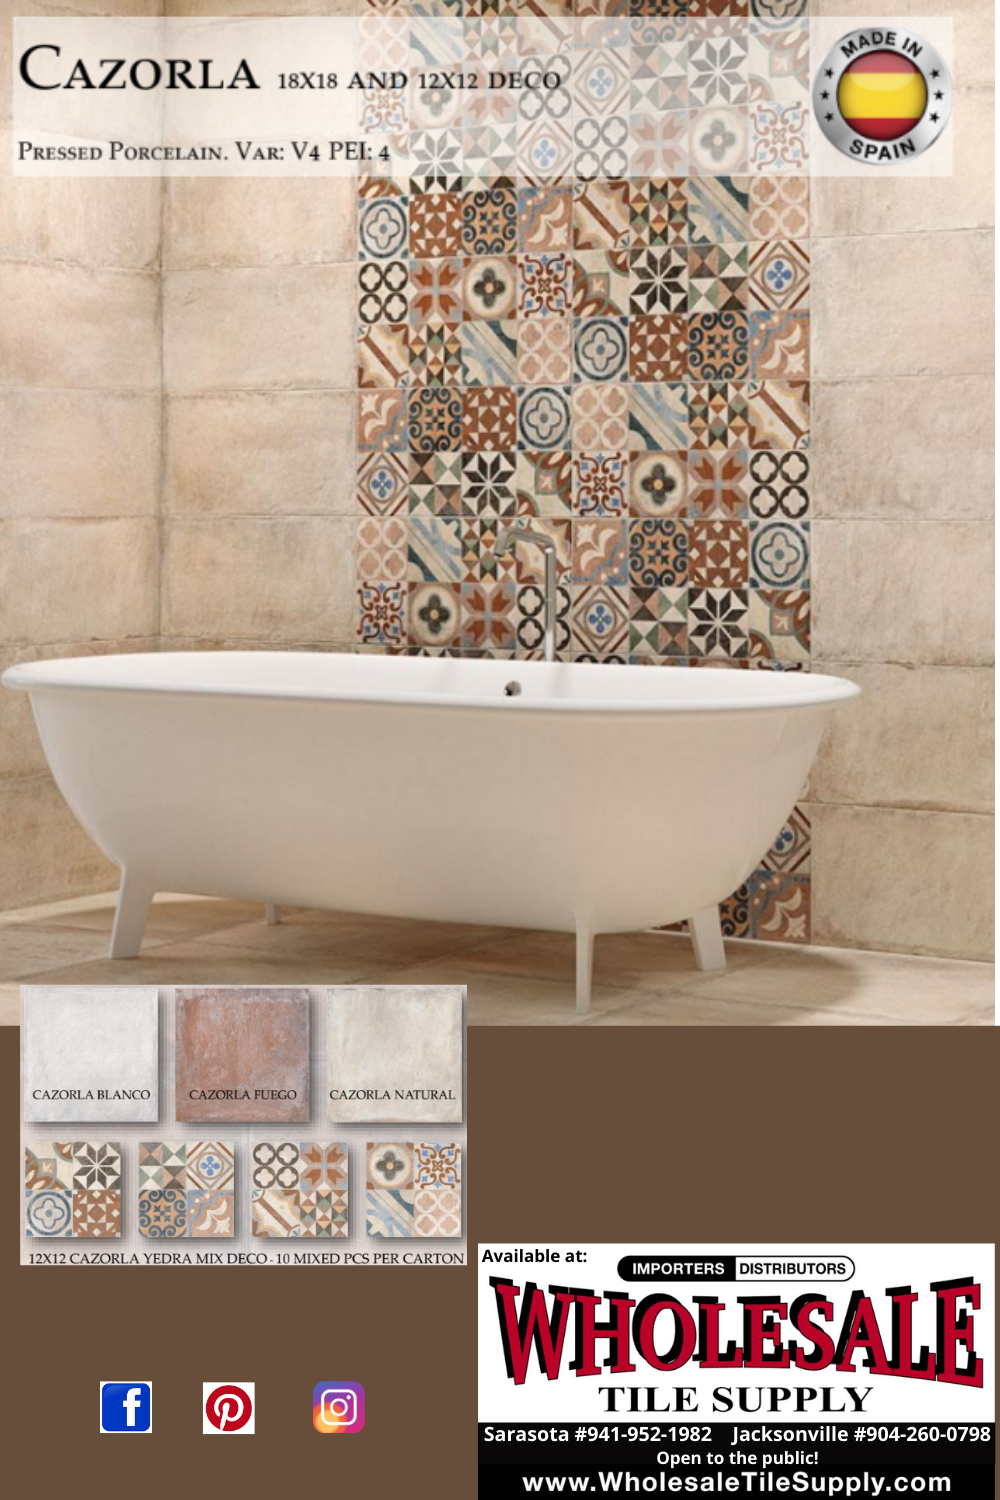 cazorla terracotta looking tile made of